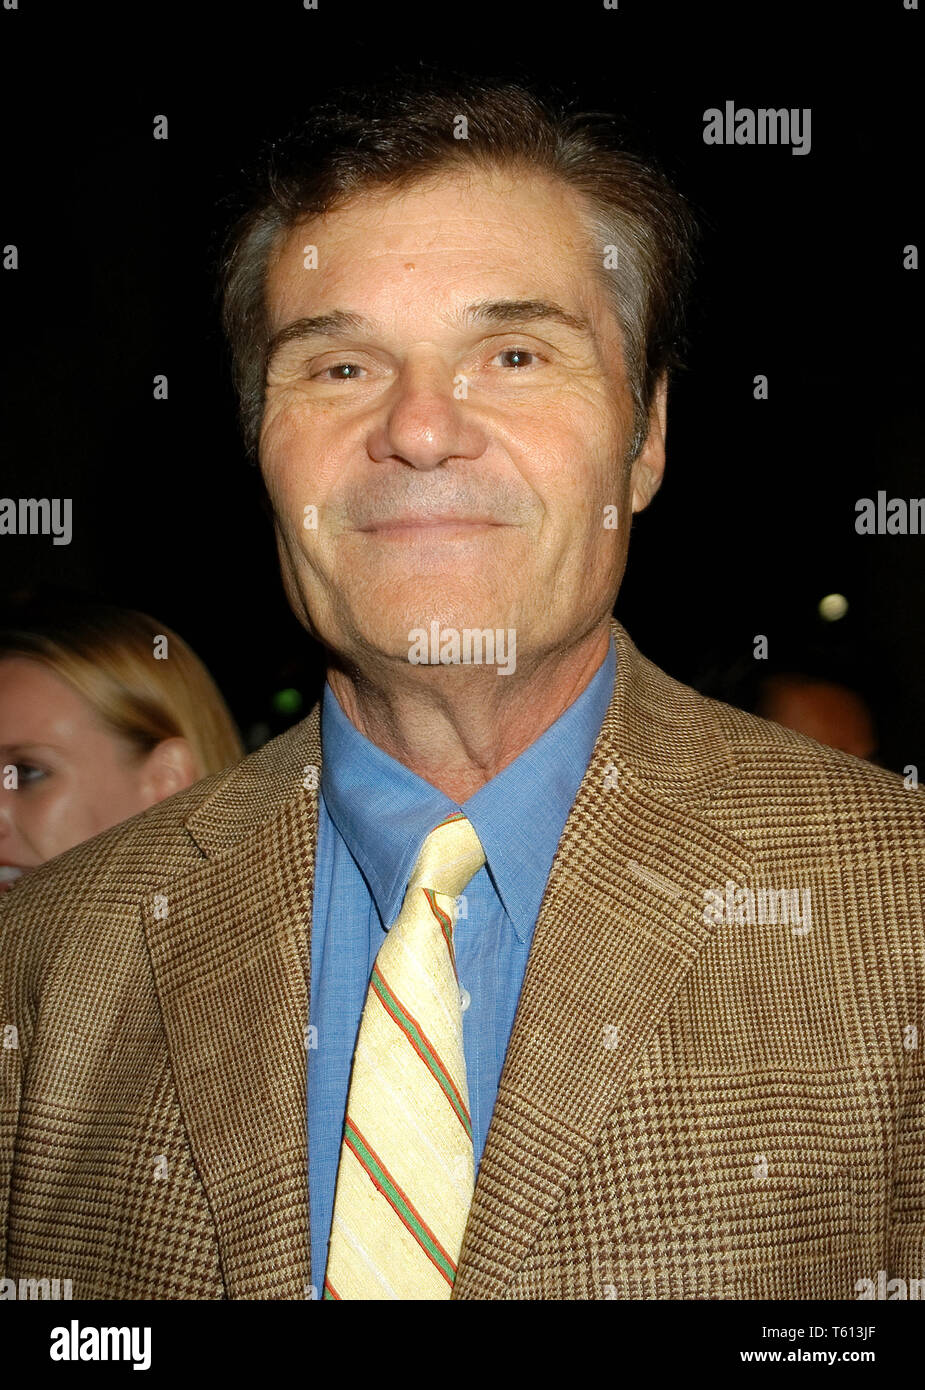 Fred Willard at the Academy of Television Arts & Sciences dinner honoring the 55th Annual Primetime Emmy Awards Nominees for Outstanding Performing Talent at Spagos in Beverly Hills, CA. The event took place on Thursday, September 18, 2003. Photo by: SBM / PictureLux  File Reference # 33790_2402SBMPLX - Stock Image